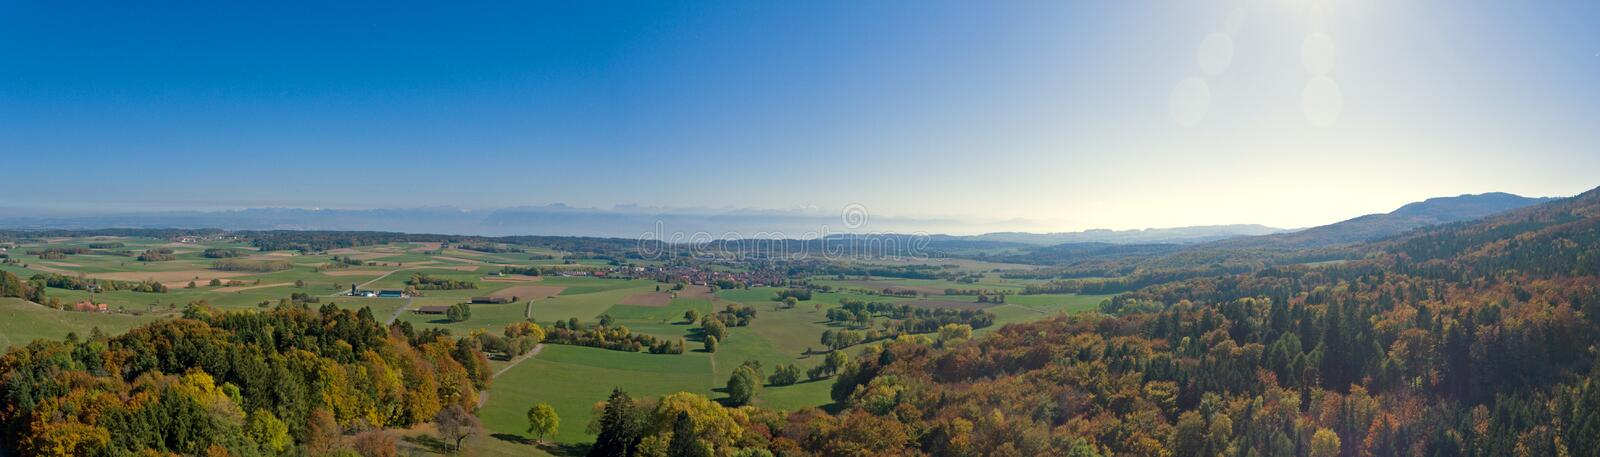 Views from mont tendre in the swiss Jura towards the french alps. stock photos